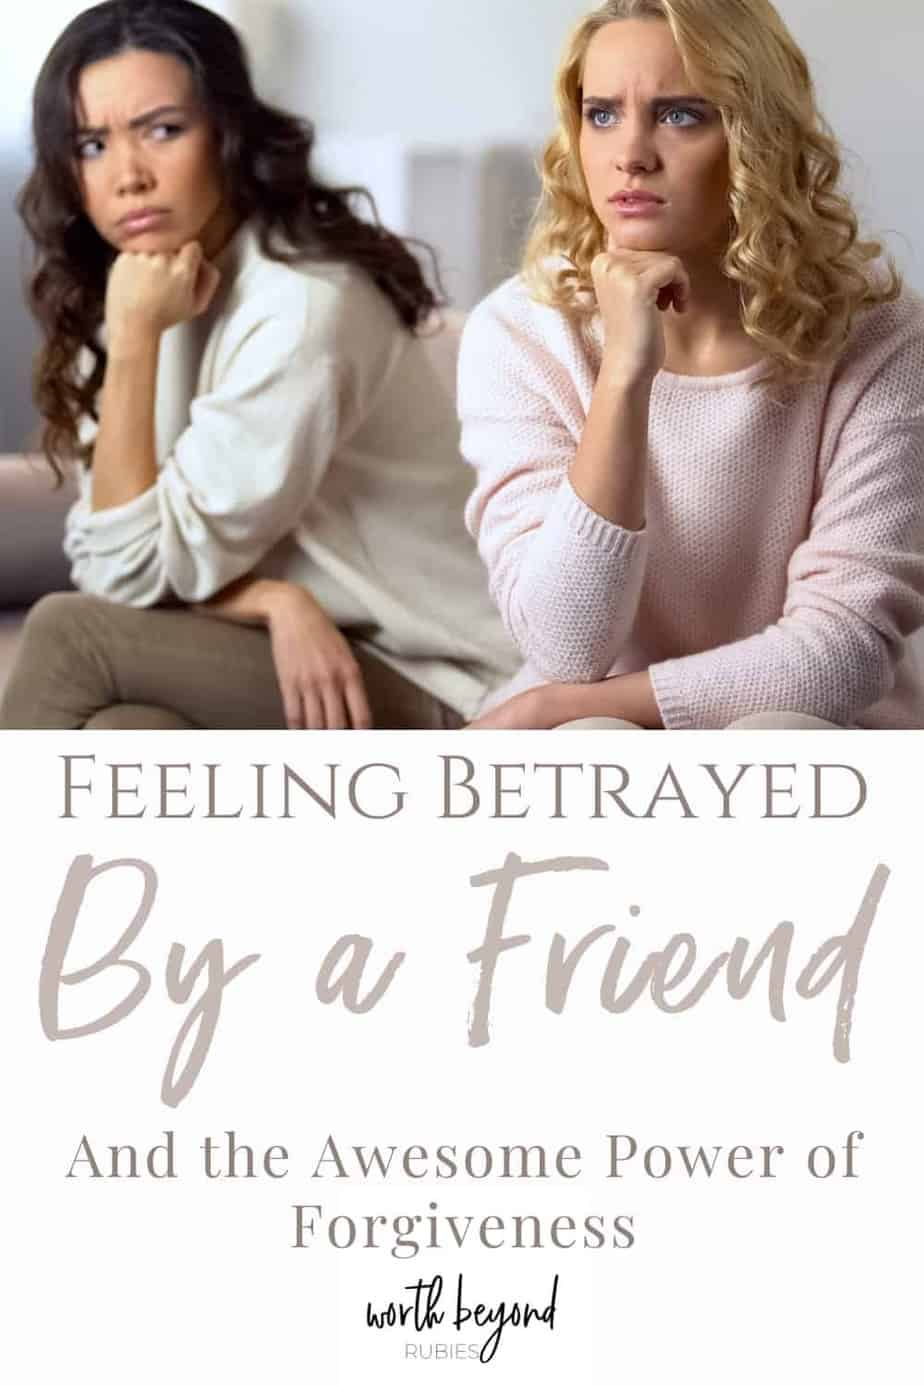 An image of a blonde woman and a brunette woman sitting next to each other on a couch and both have a hand to their chin looking angry like they are arguing or mad at eachother. The blonde is looking away and the brunette is looking at the blonde. There is a text headline under the image that says Feeling Betrayed by a Friend - And the Awesome Power of Forgiveness